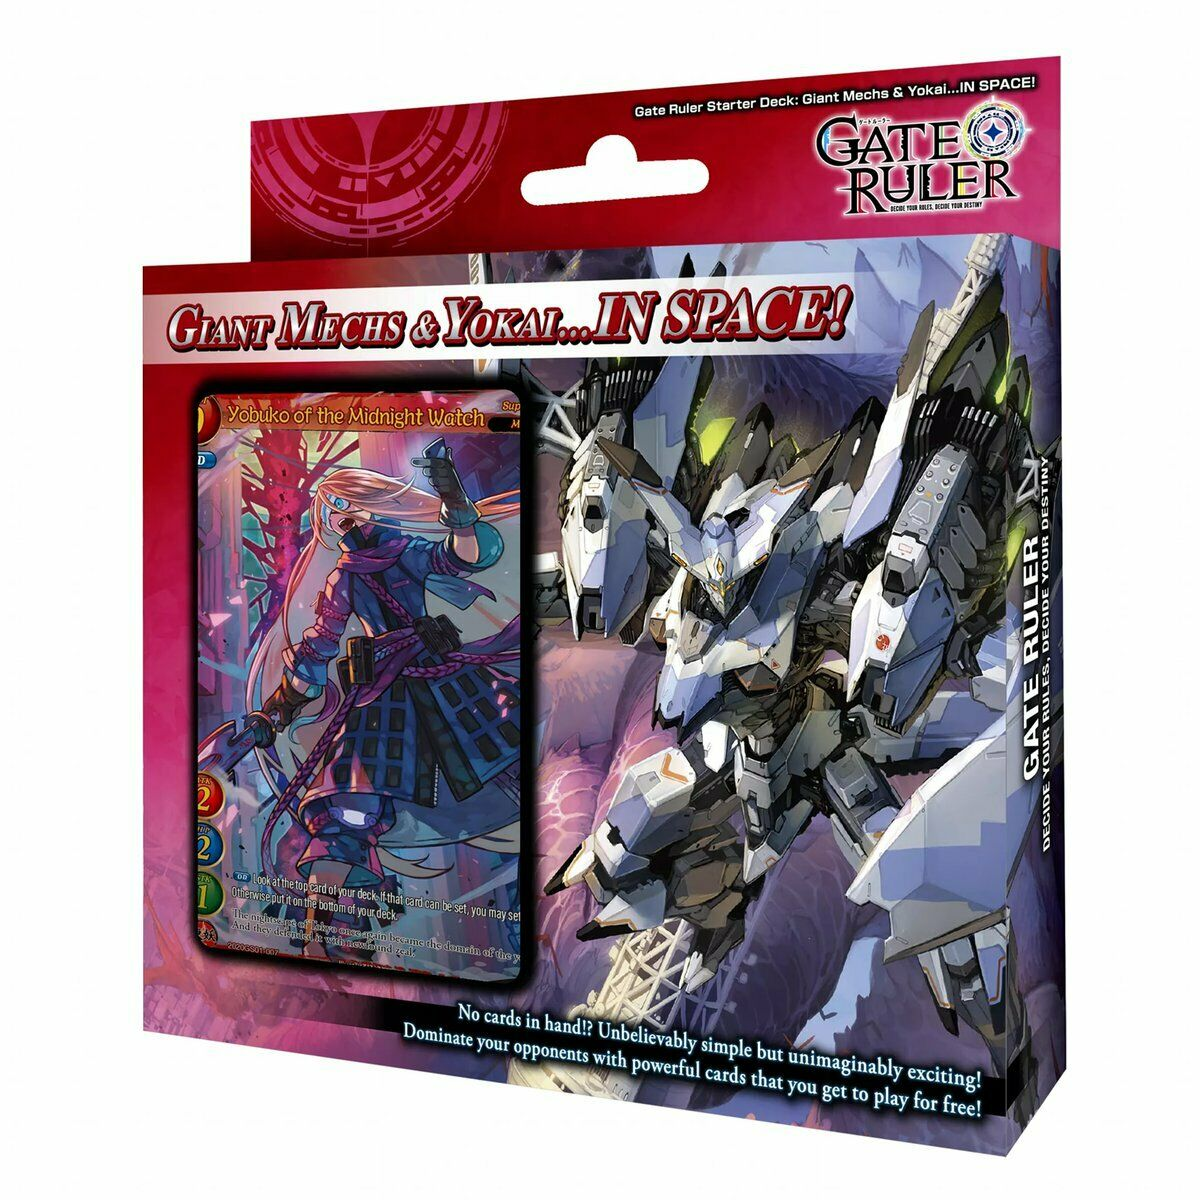 Starter Deck: Giant Mechs and Yokai in Space!